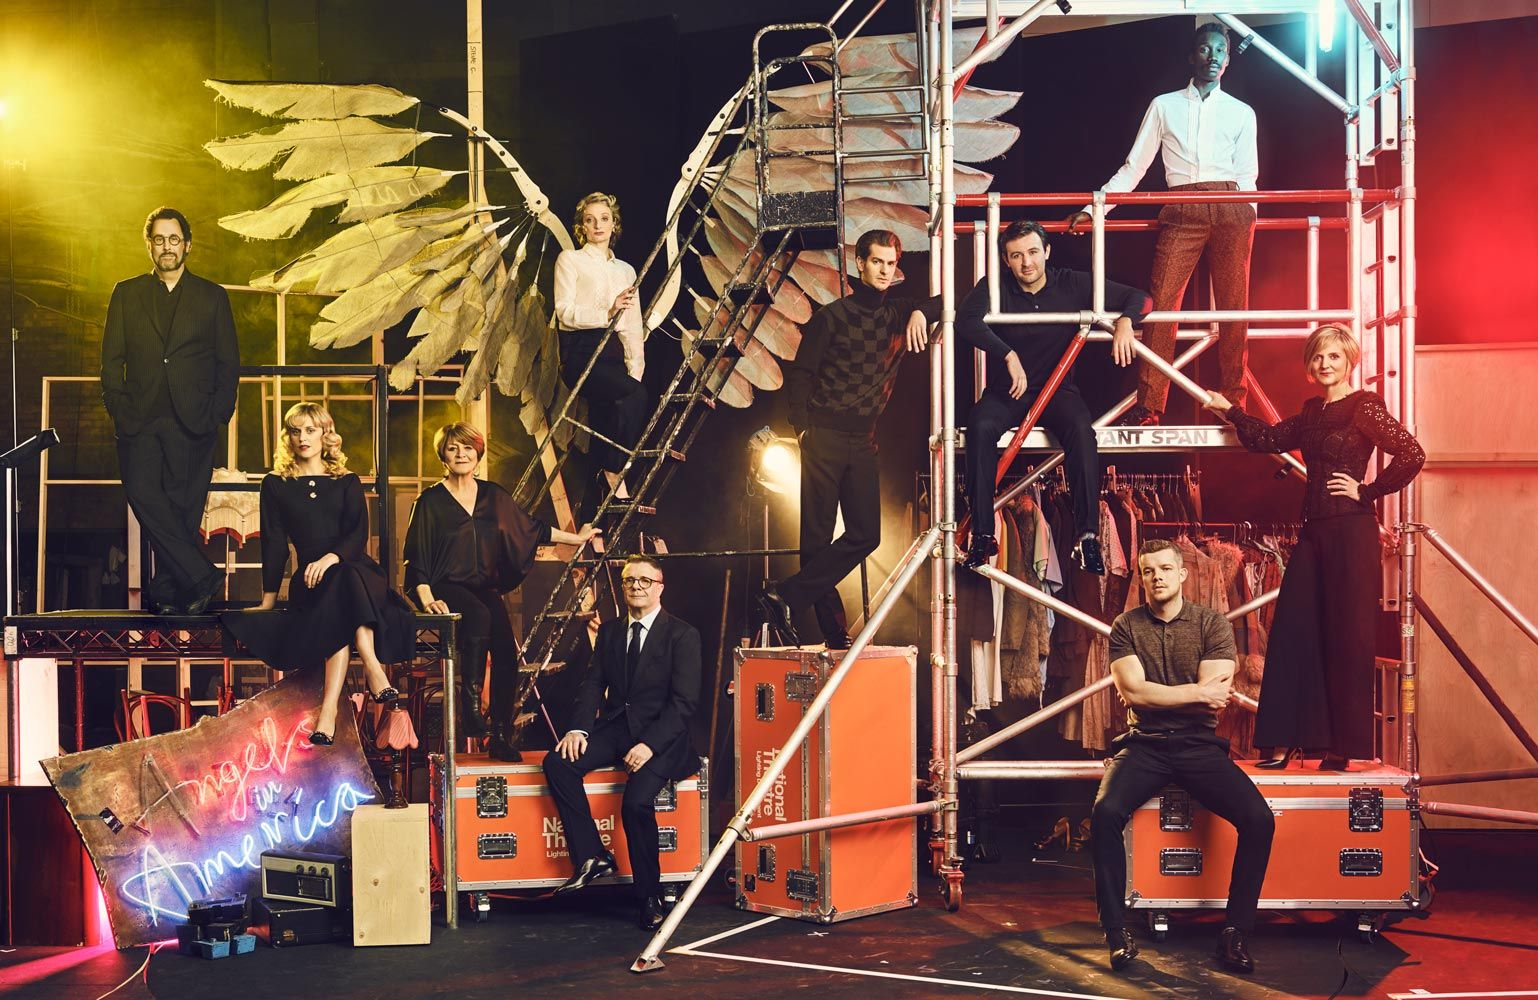 Cast Of Angels In America With Images Set Design Theatre